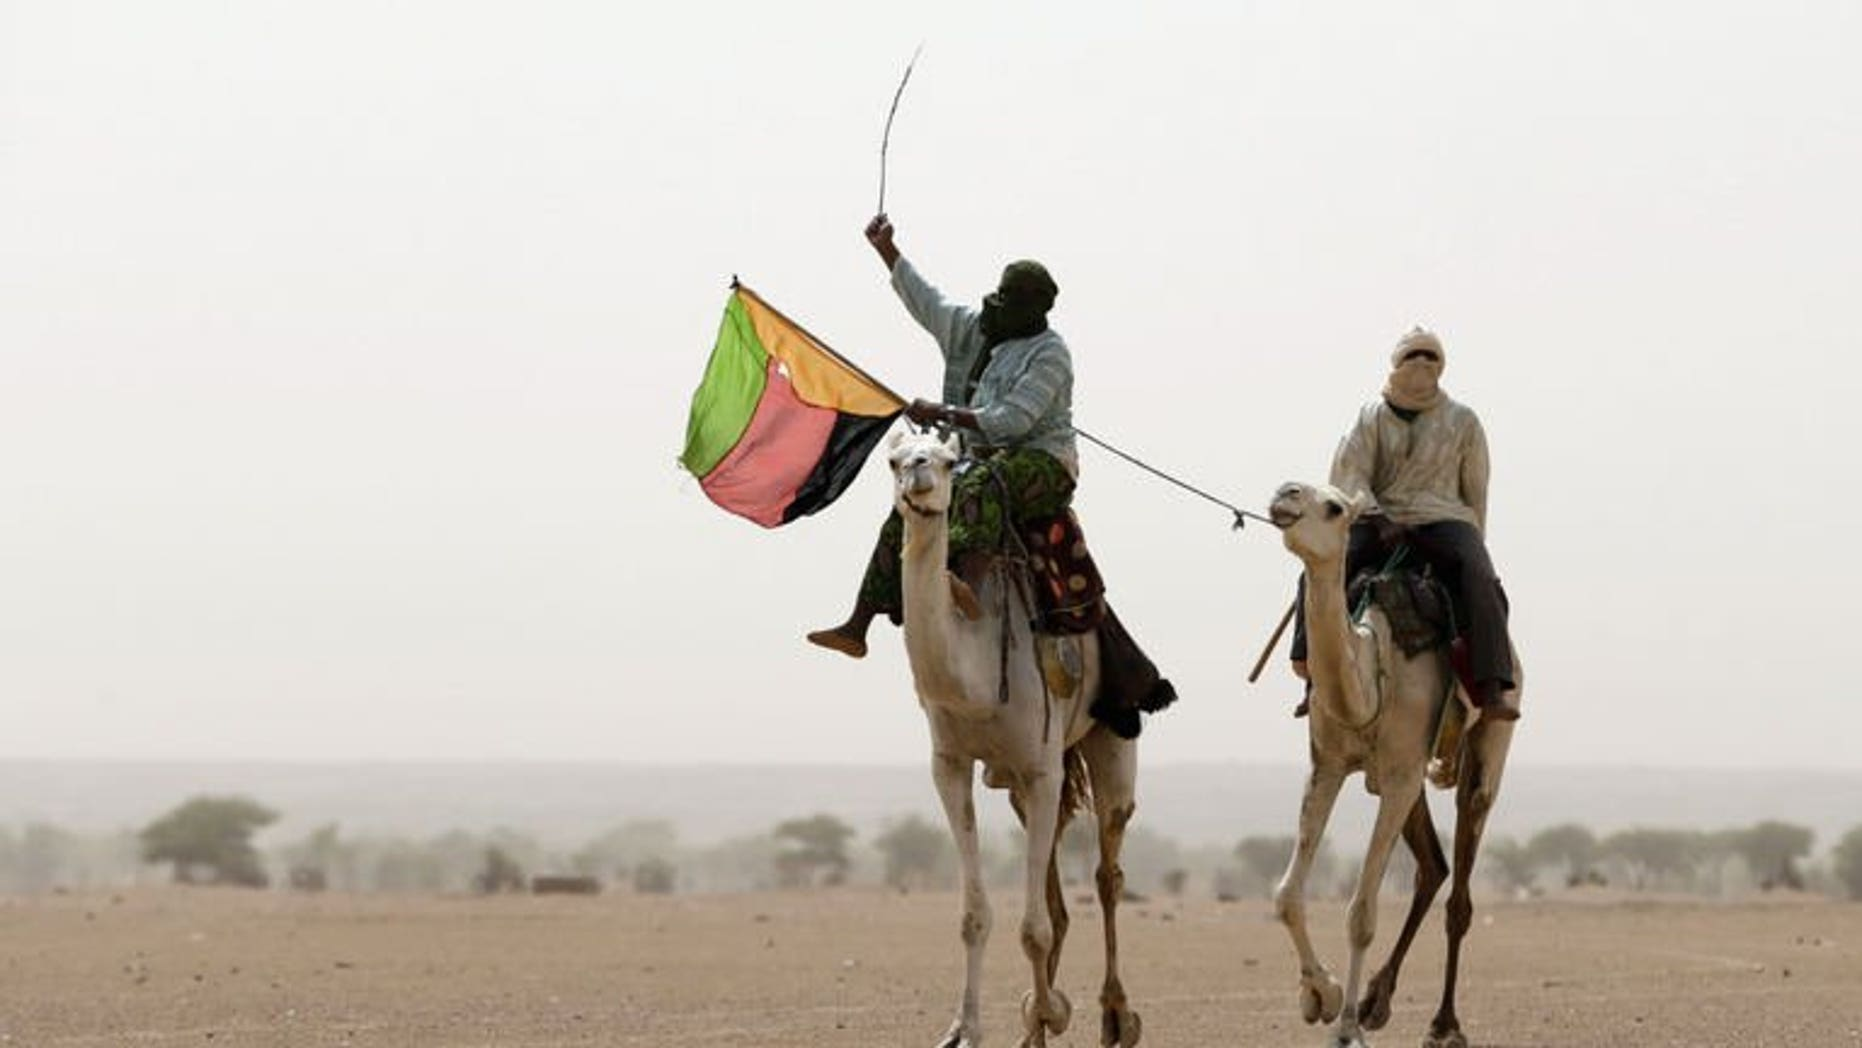 A Tuareg man holds the flag of the National Movement for the Liberation of Azawad (MLNA) in Kidal, northern Mali on July 28, 2013.